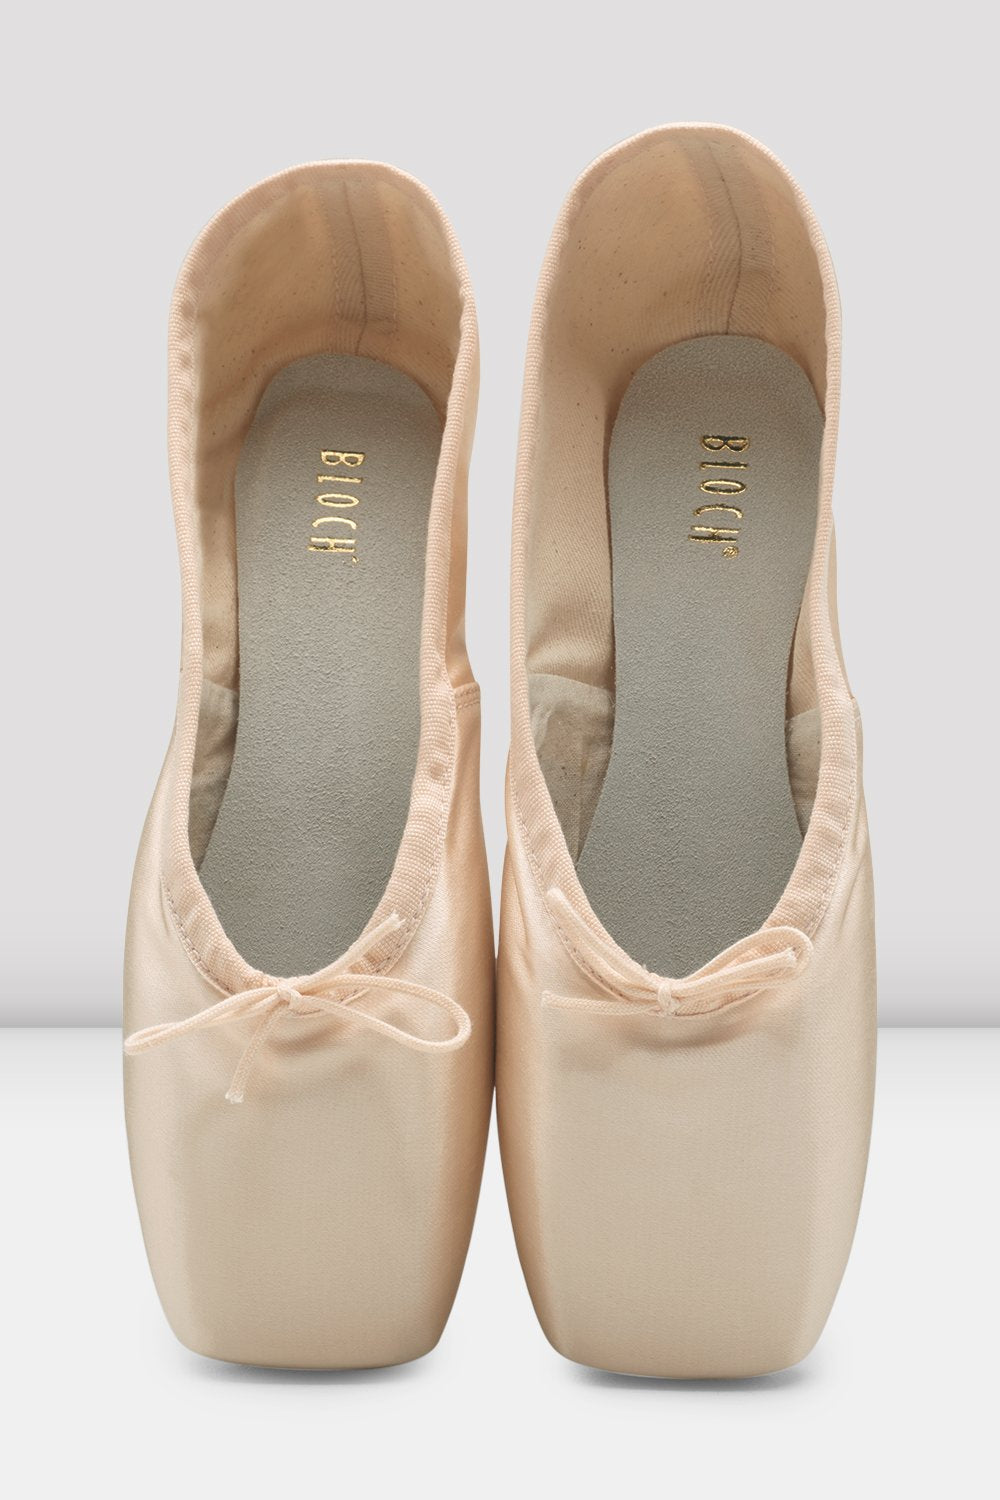 Serenade Strong Pointe Shoes